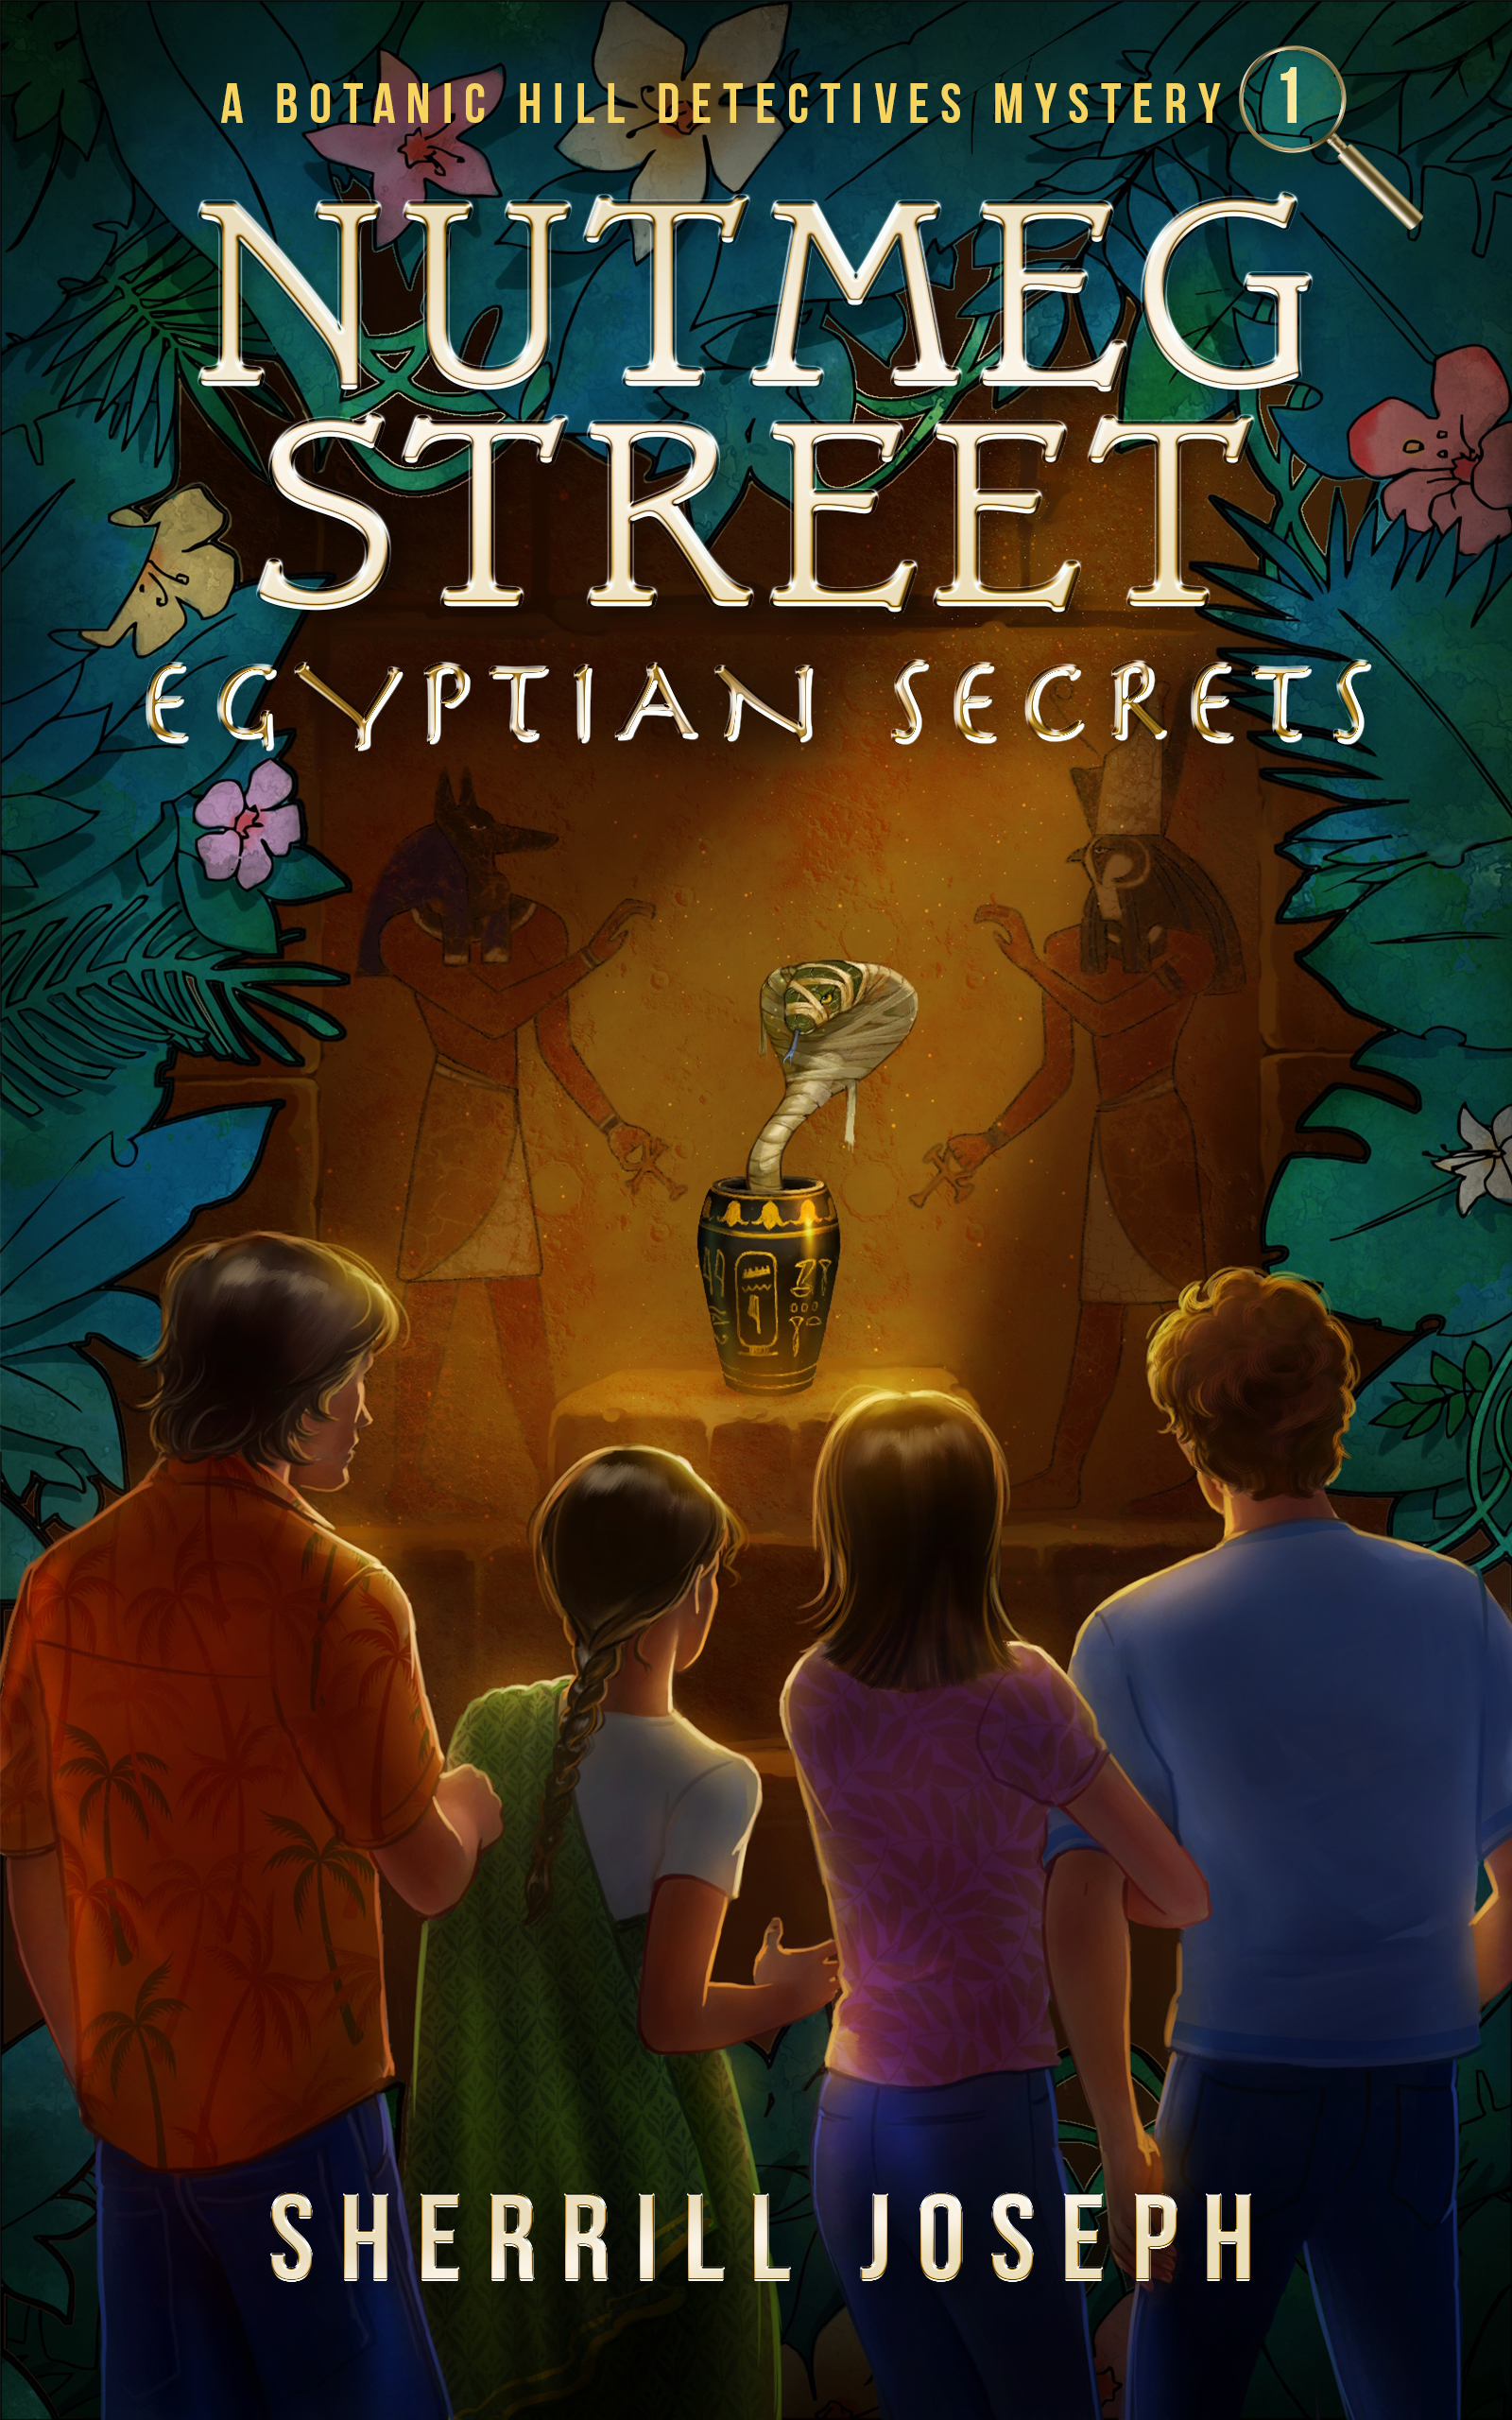 NutmegStreet-EgyptianSecretes_cover2(1)